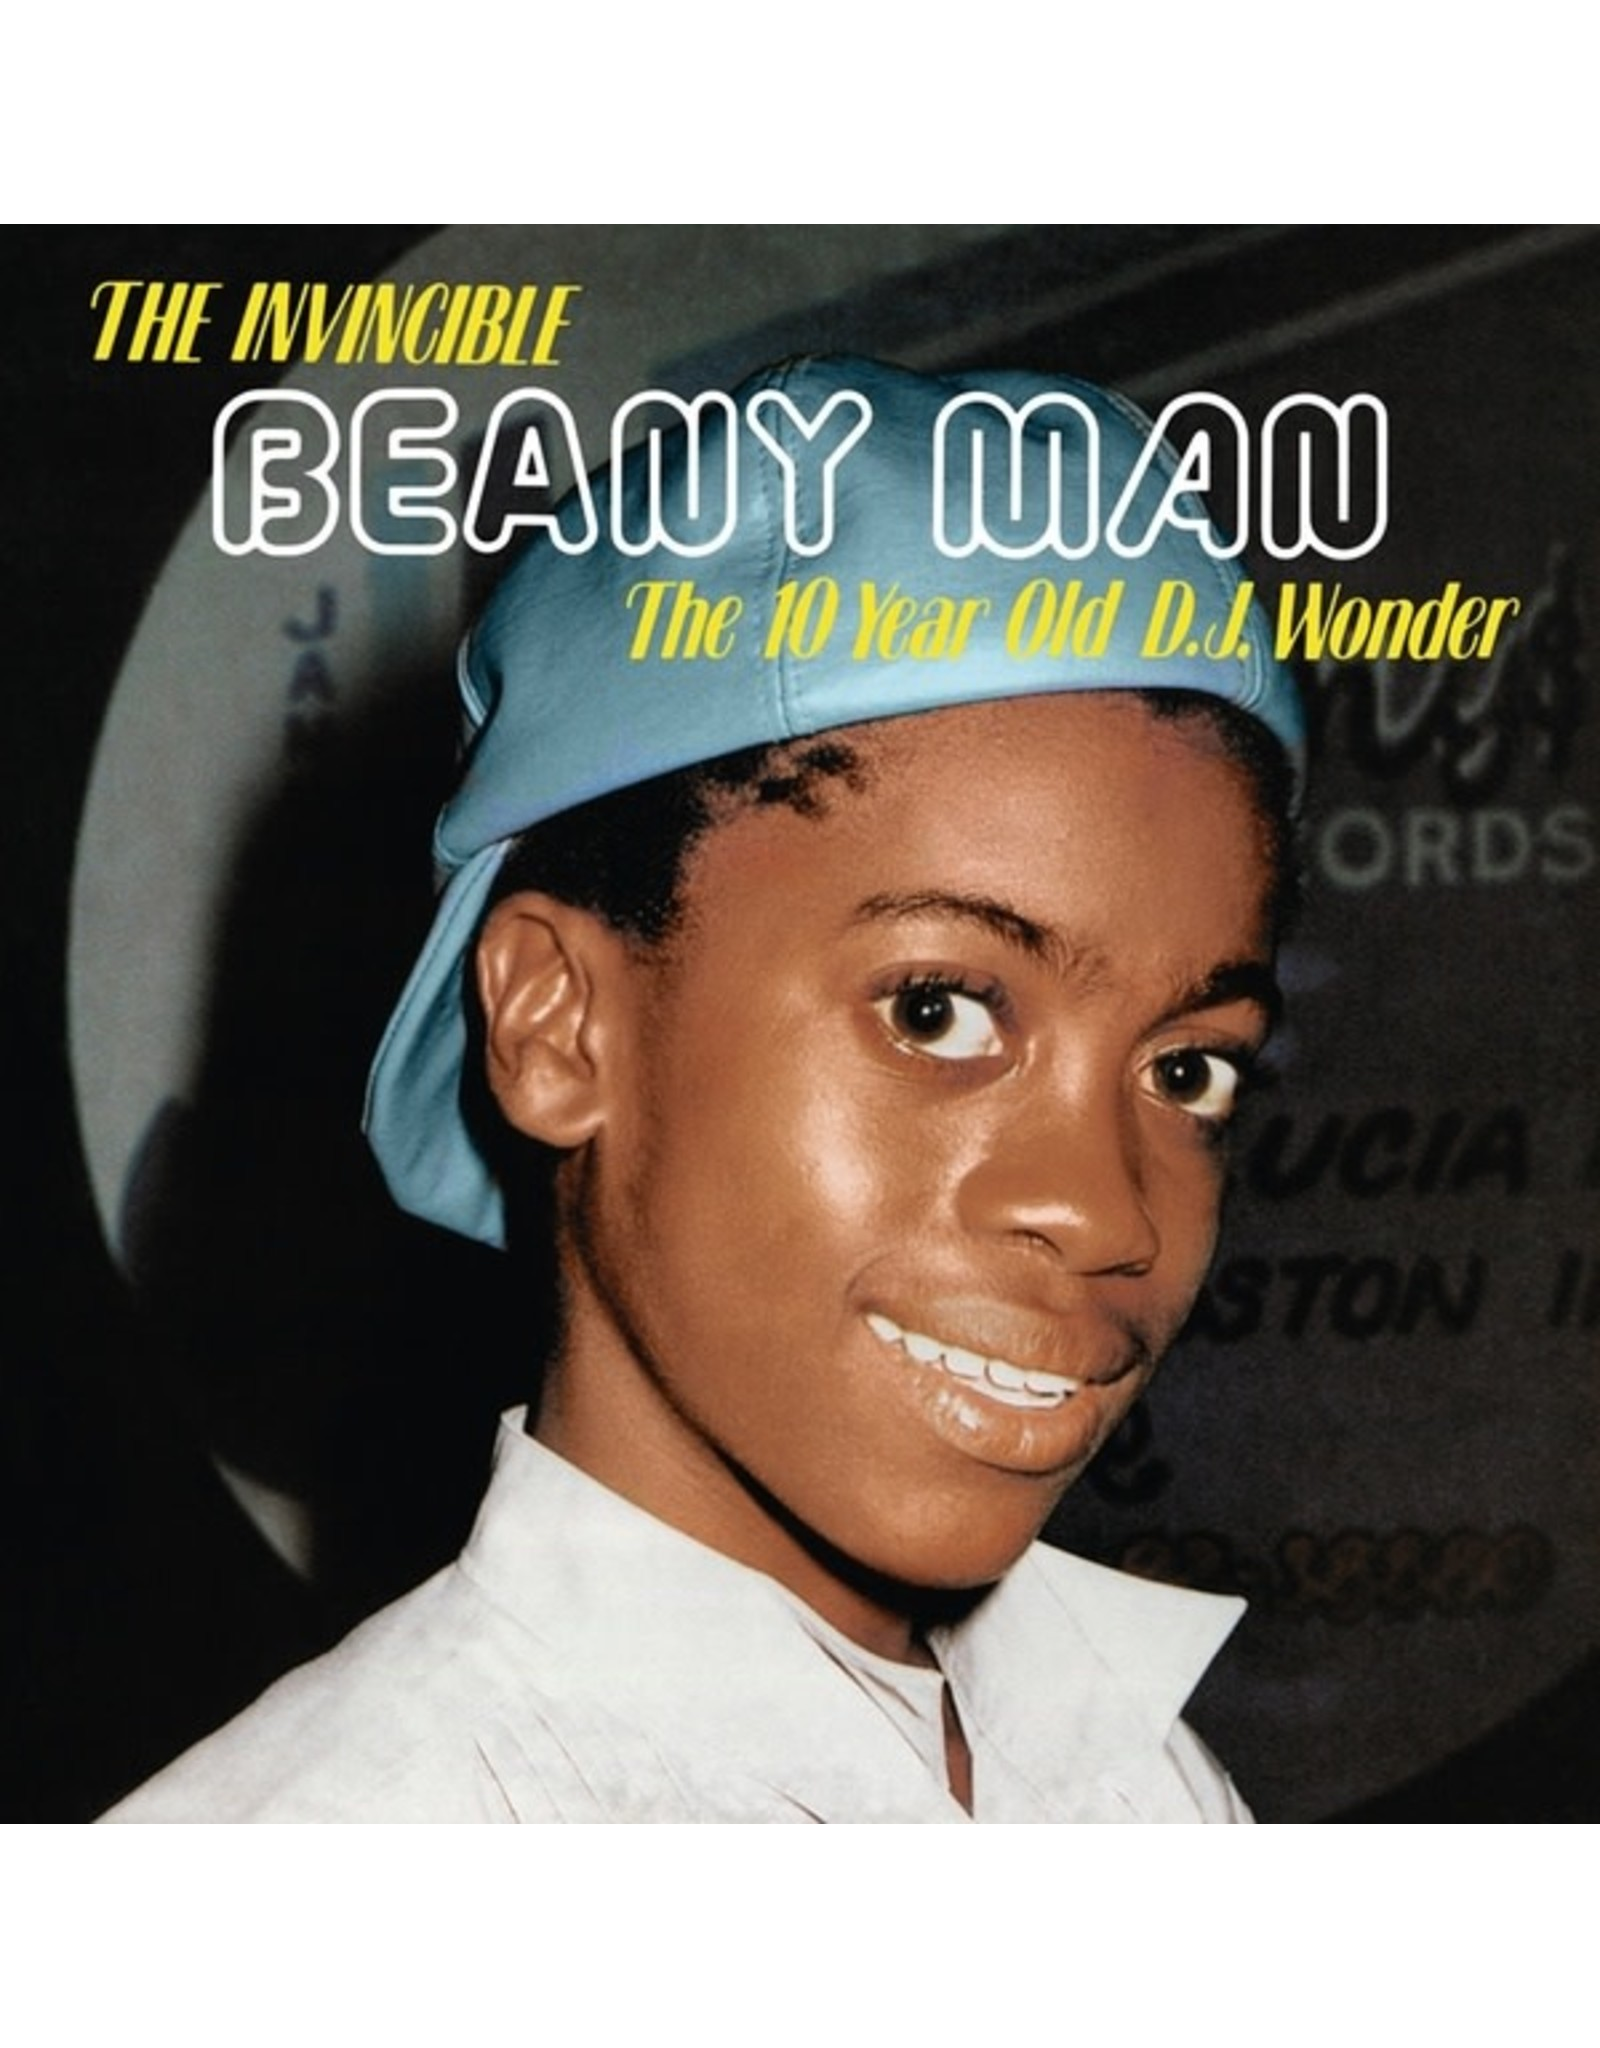 New Vinyl Beany Man - The Invincible Beany Man (The 10 Year Old D.J. Wonder) LP